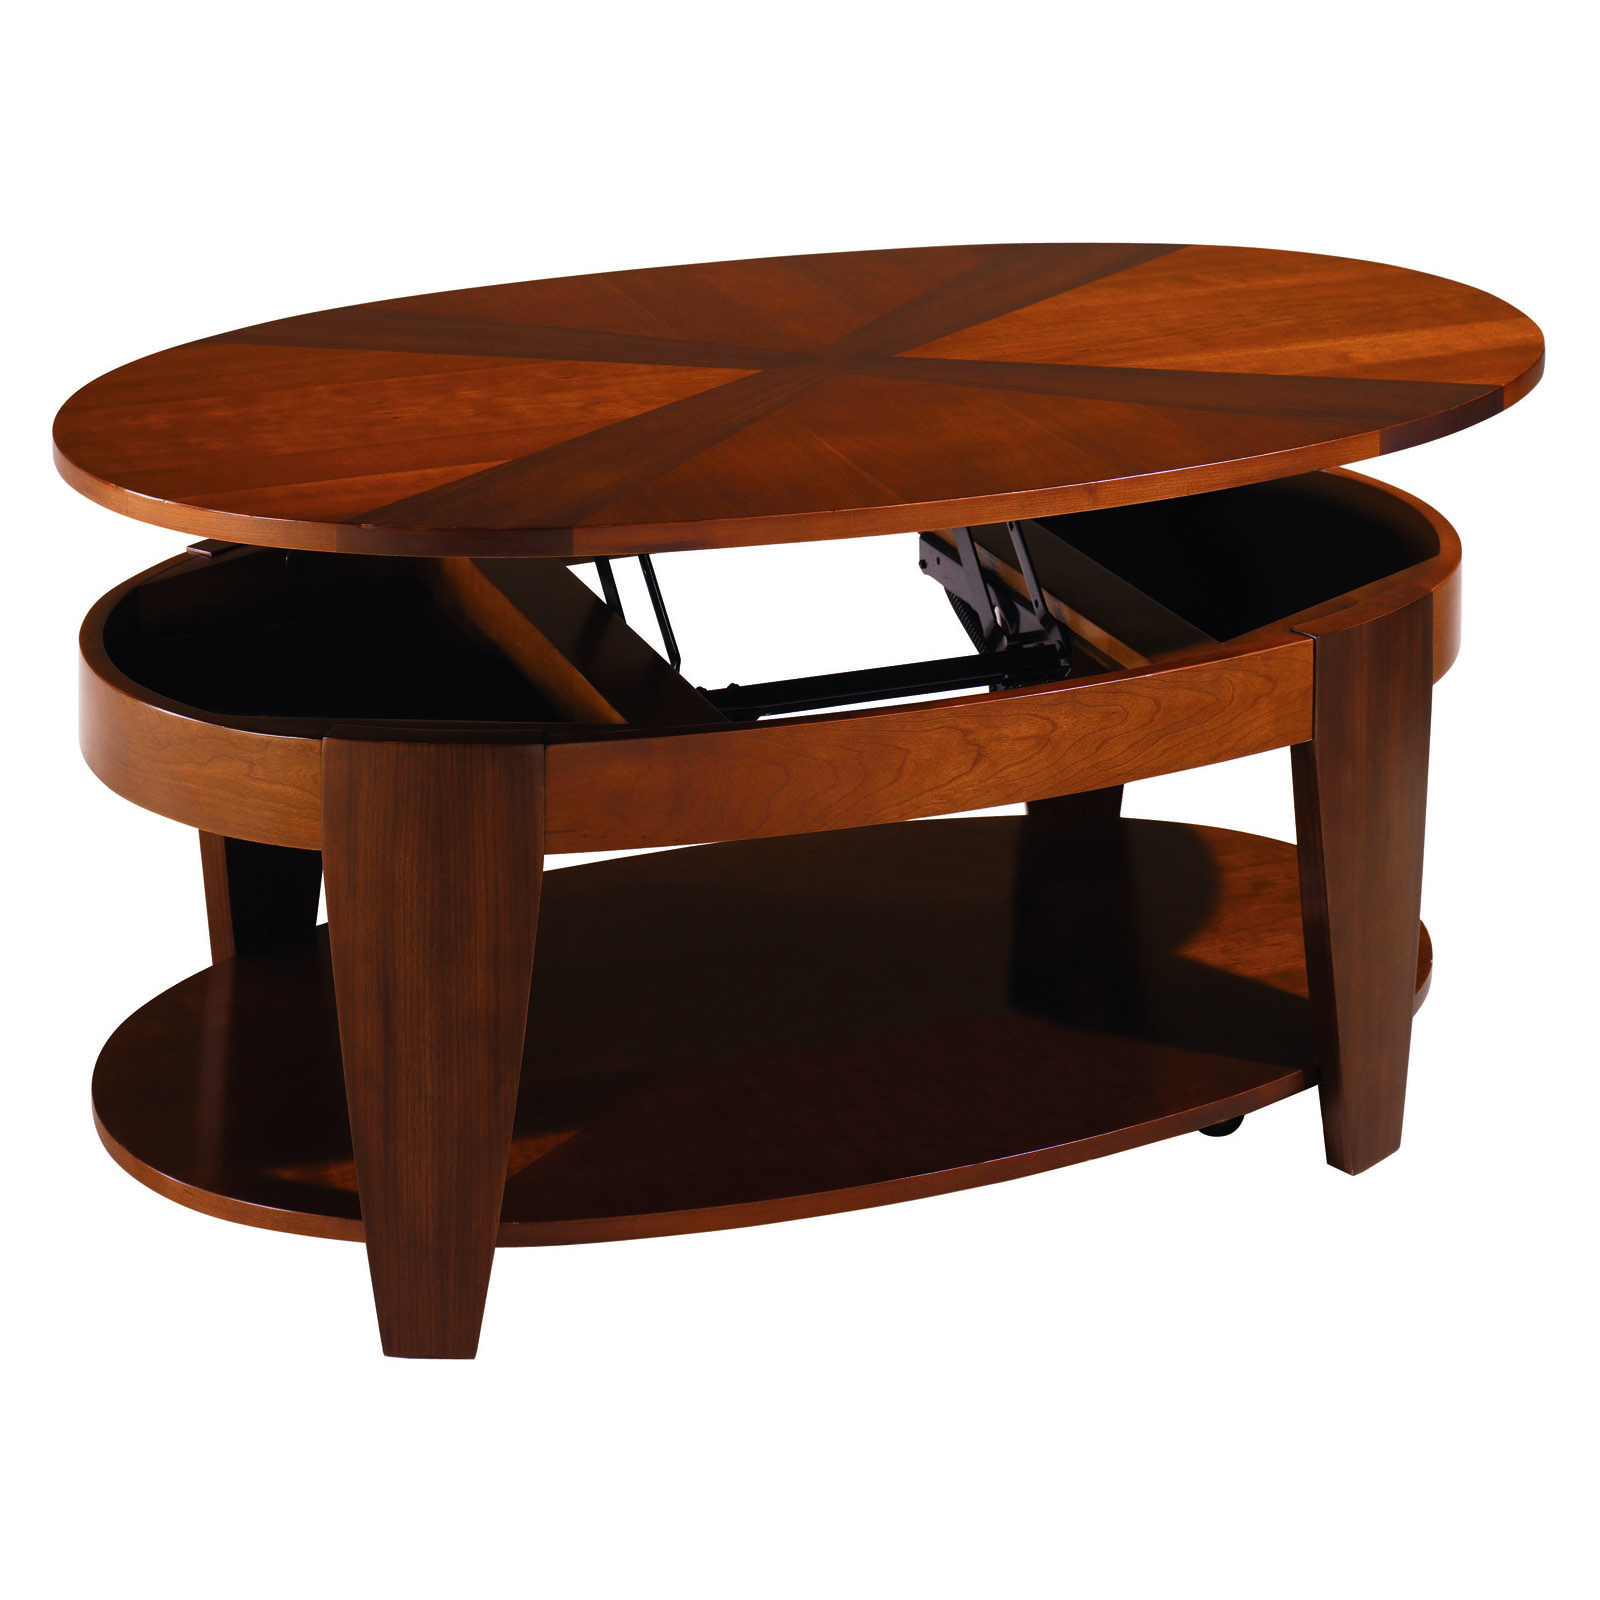 Hammary Oasis 2 Piece Oval Coffee Table Set